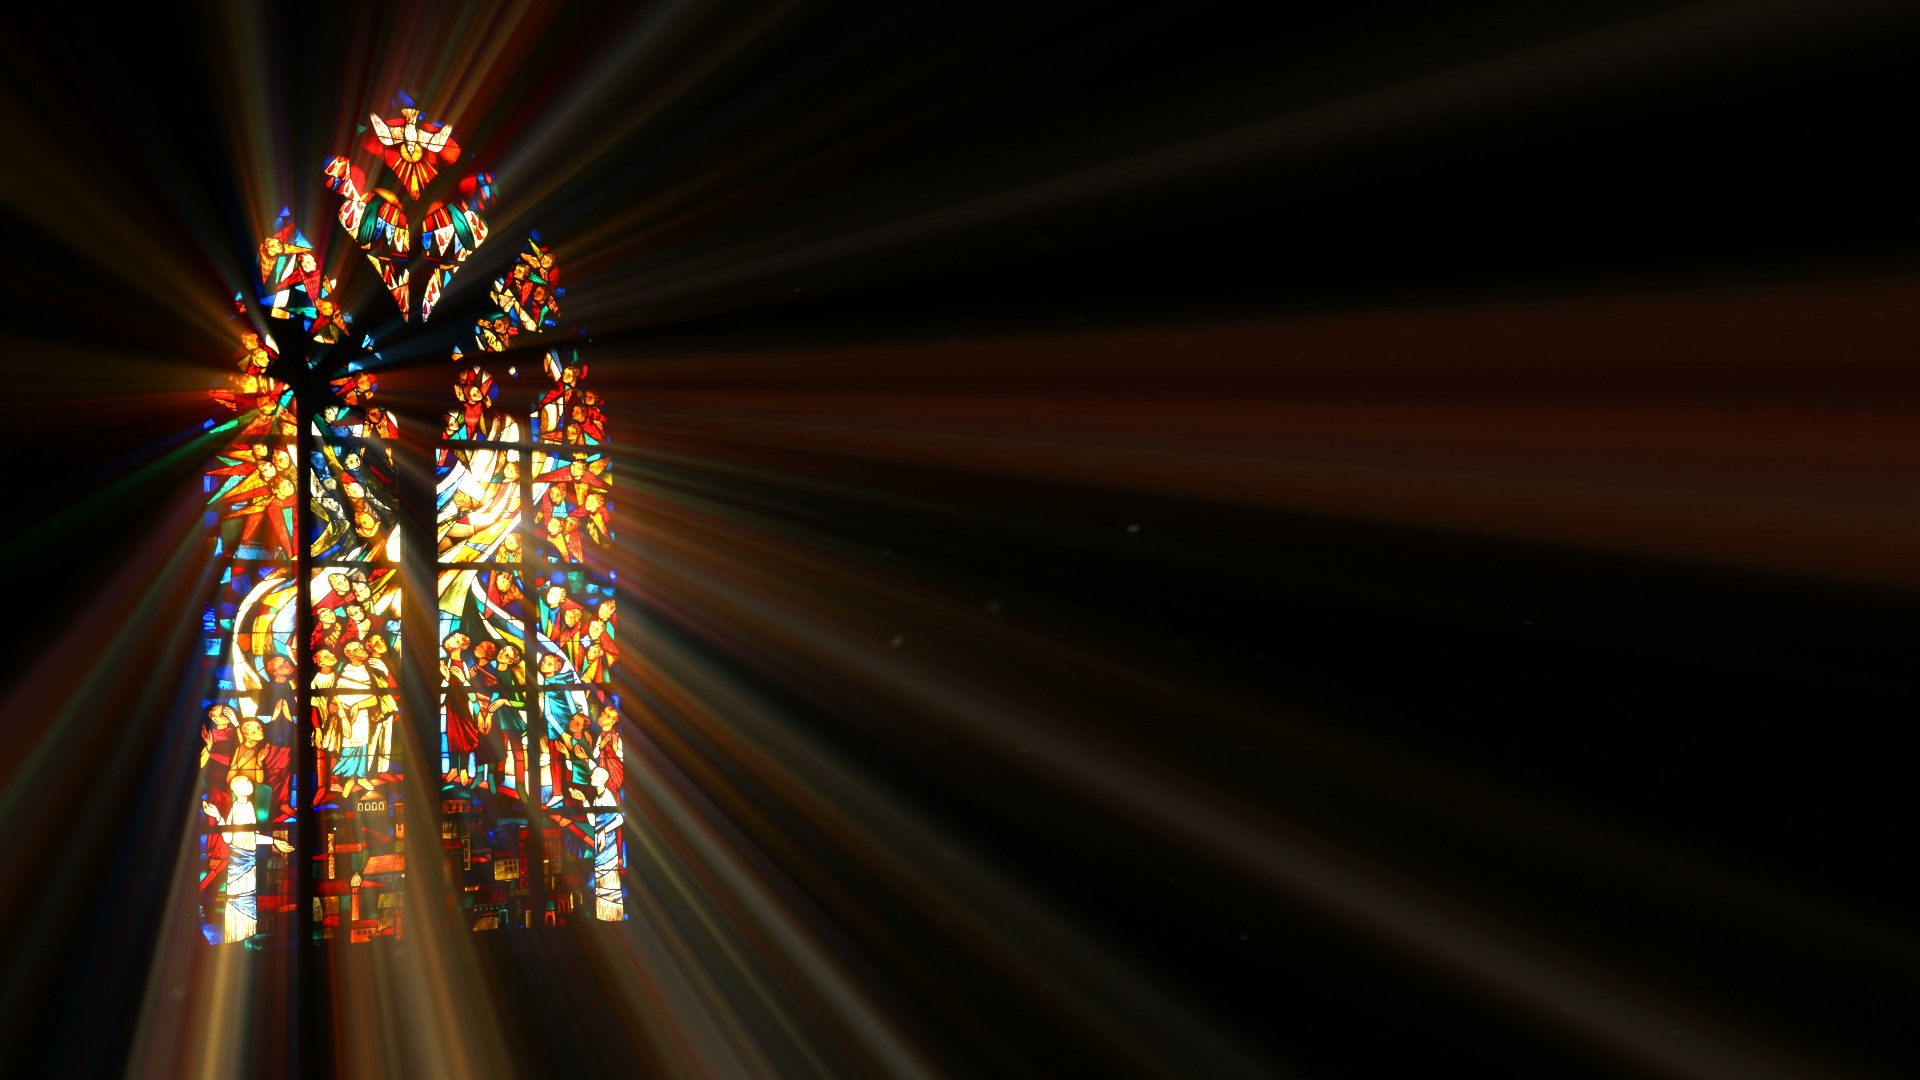 Light Rays Through Stained Glass Unlimited Free Stock